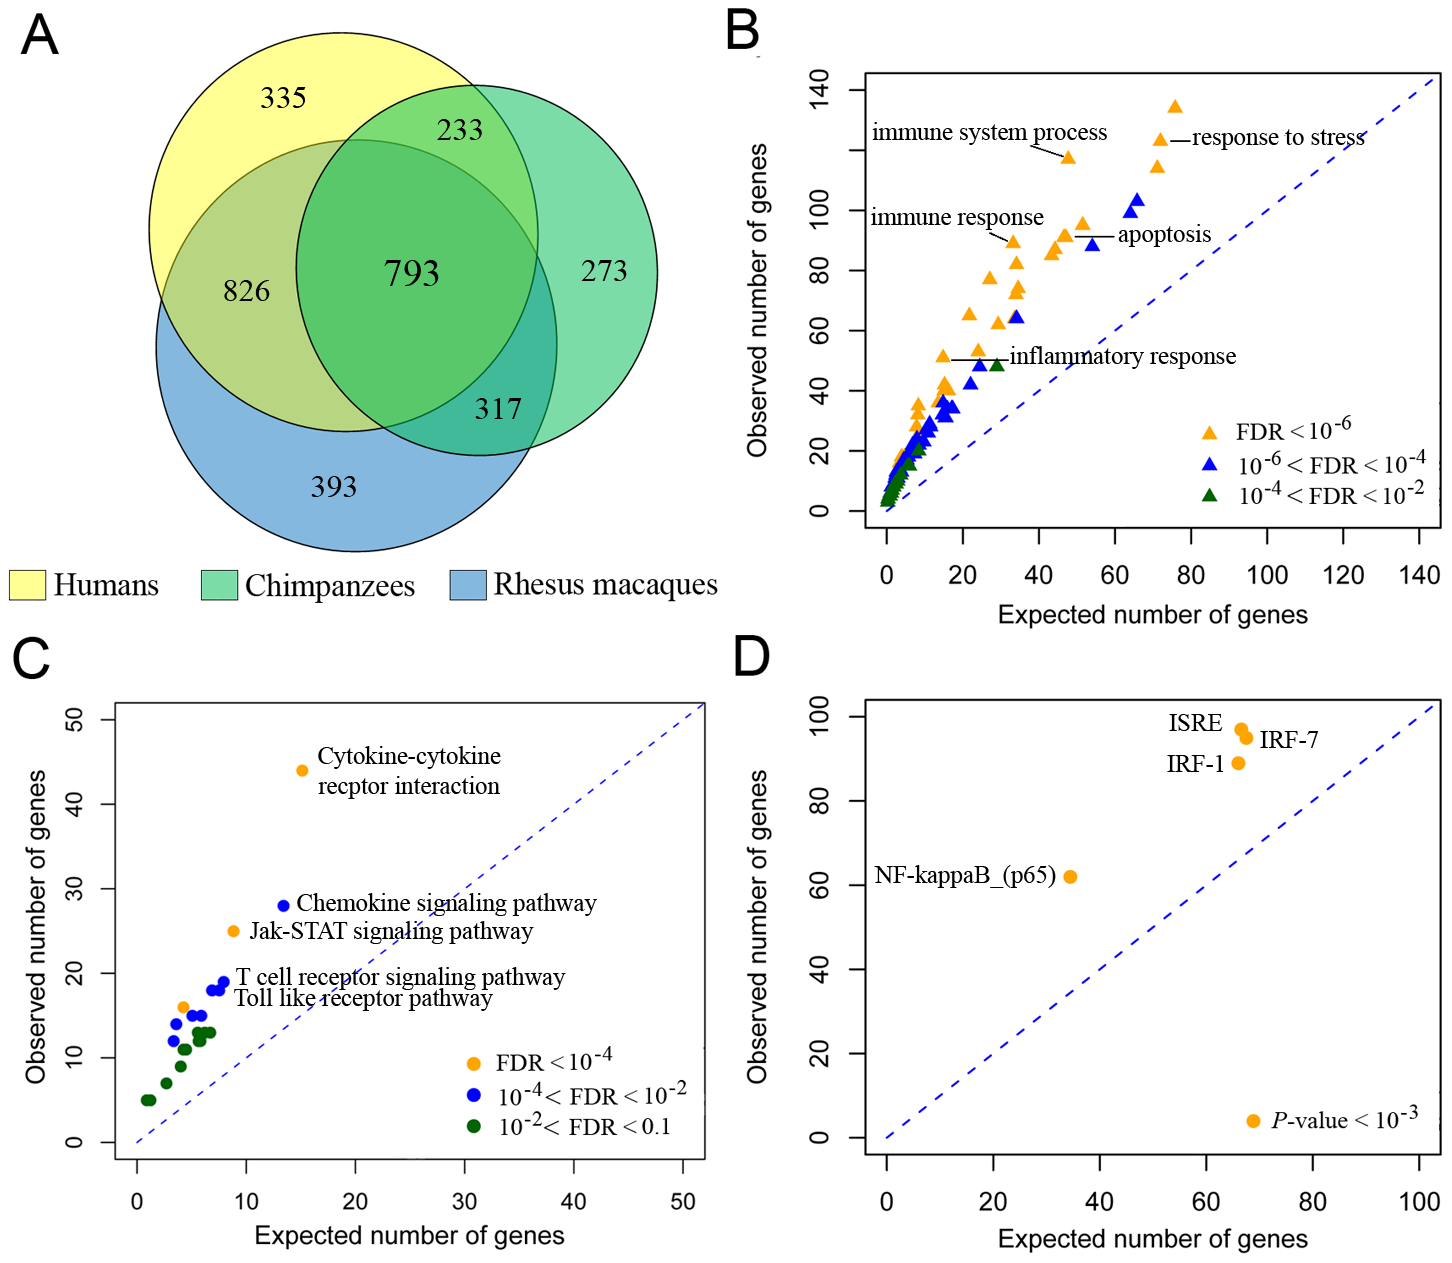 LPS-mediated innate immune response to infection in humans, chimpanzees, and rhesus macaques.